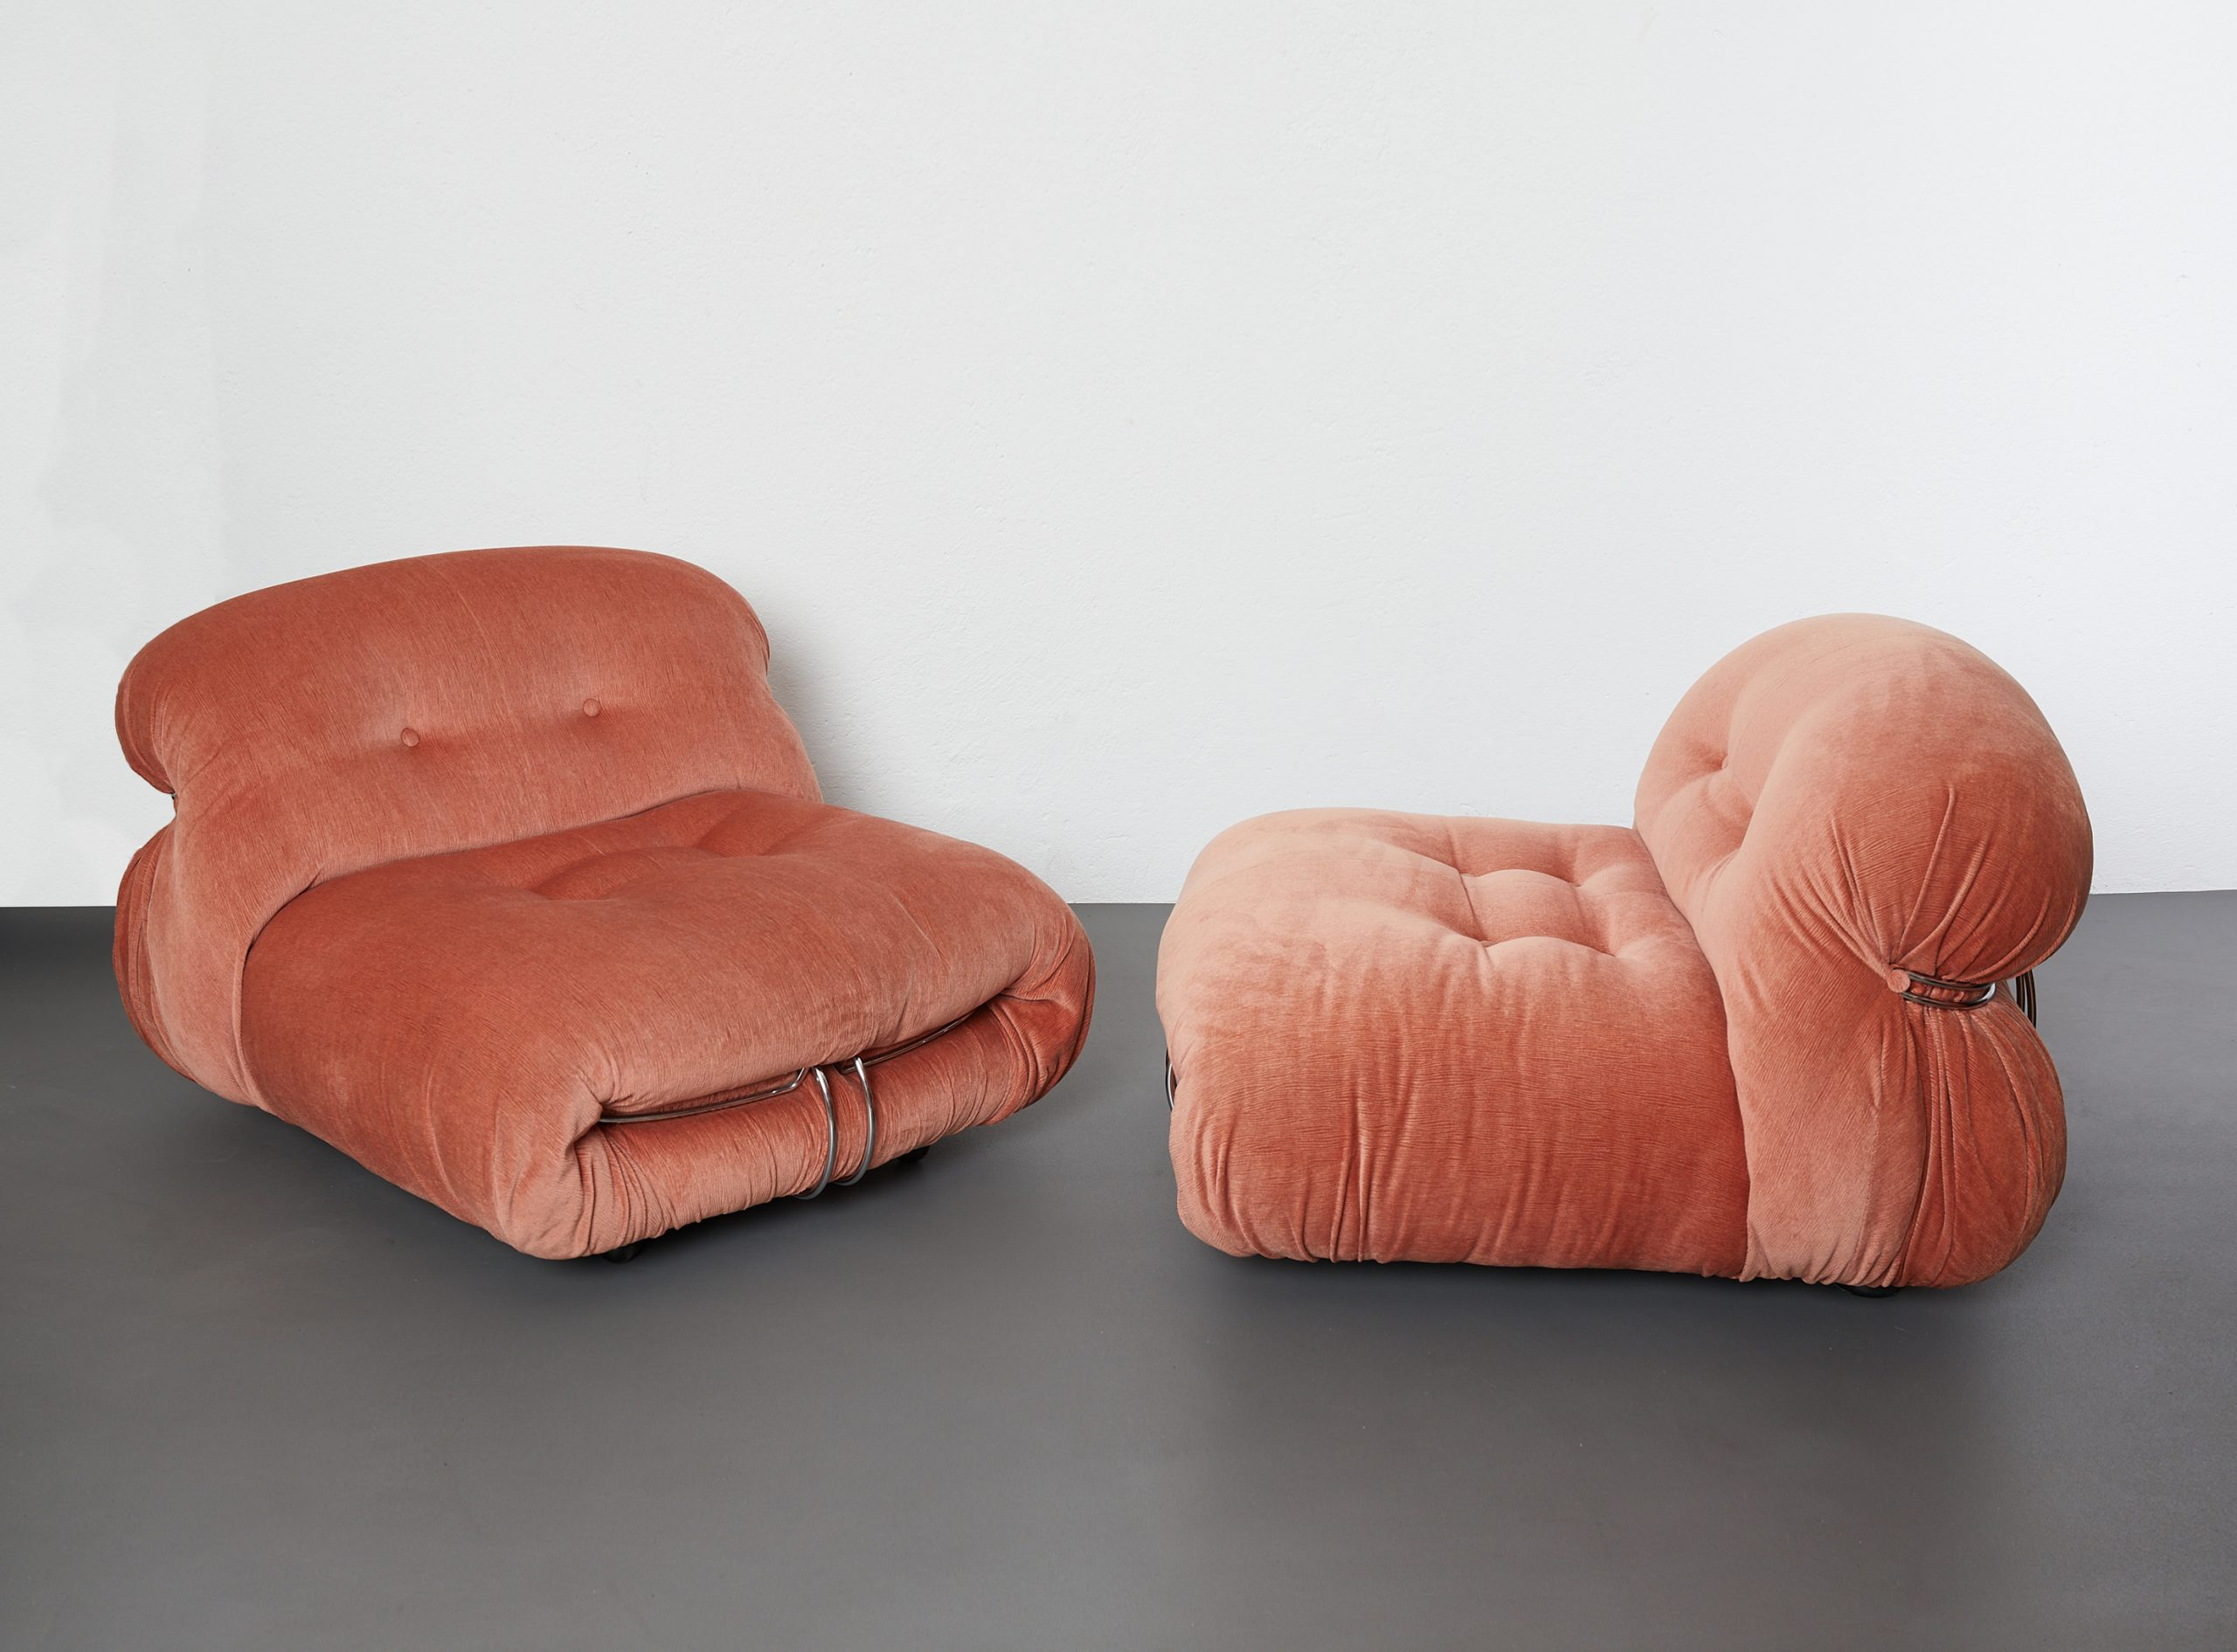 pair-of-soriana-lounge-chairs-by-afra-and-tobia-scarpa-cassina-1970-image-03